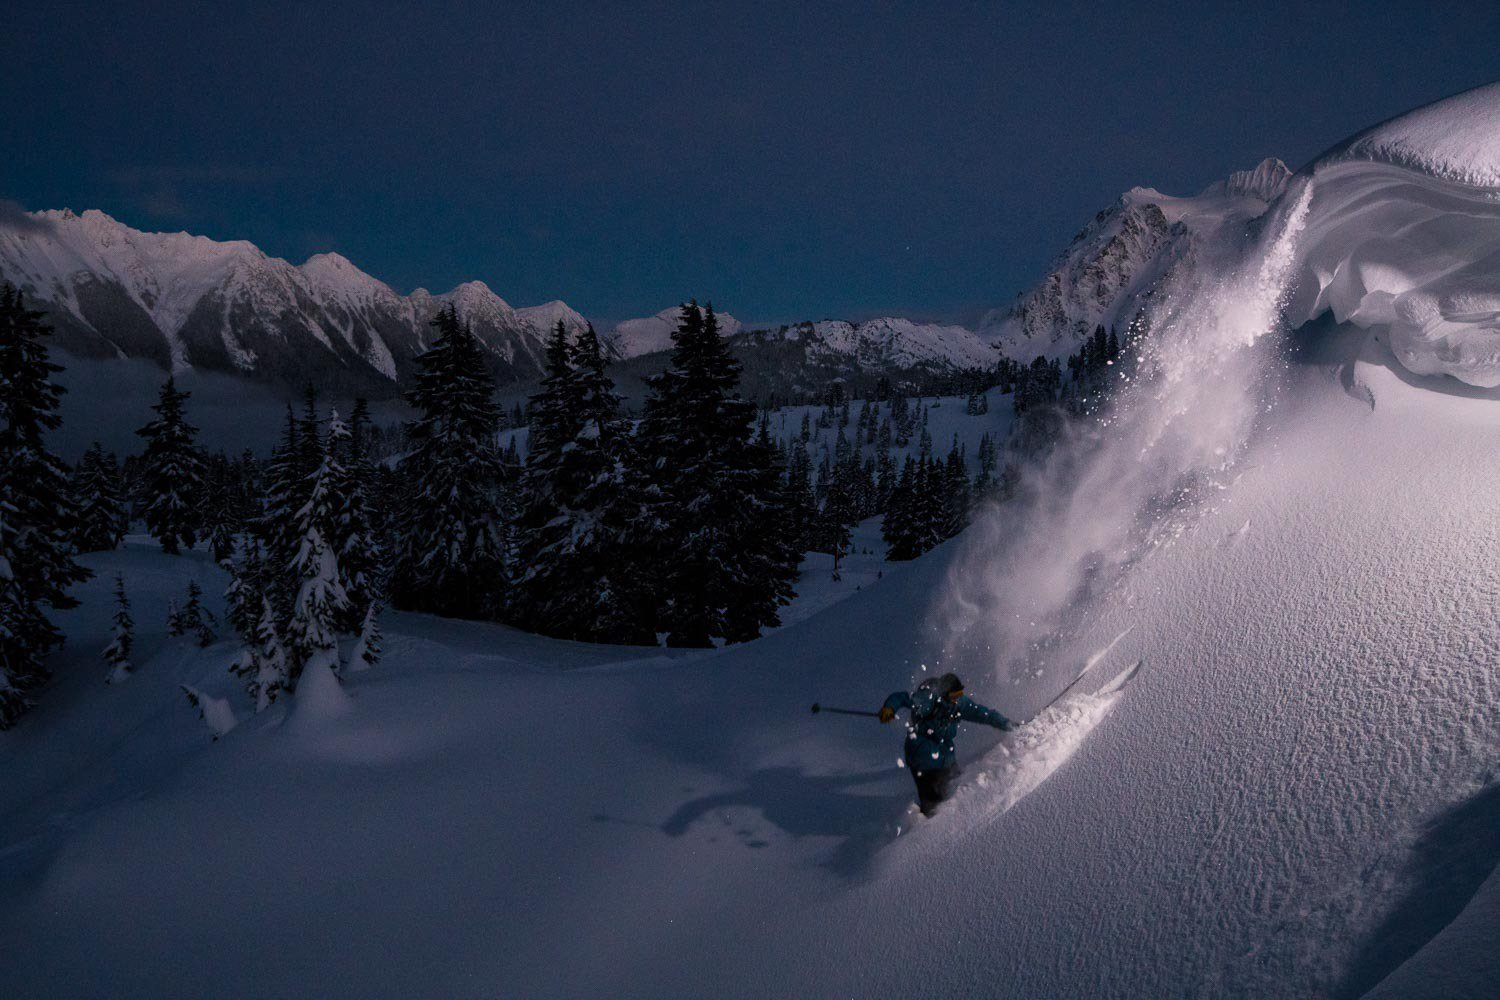 Last Light Cornice Drop